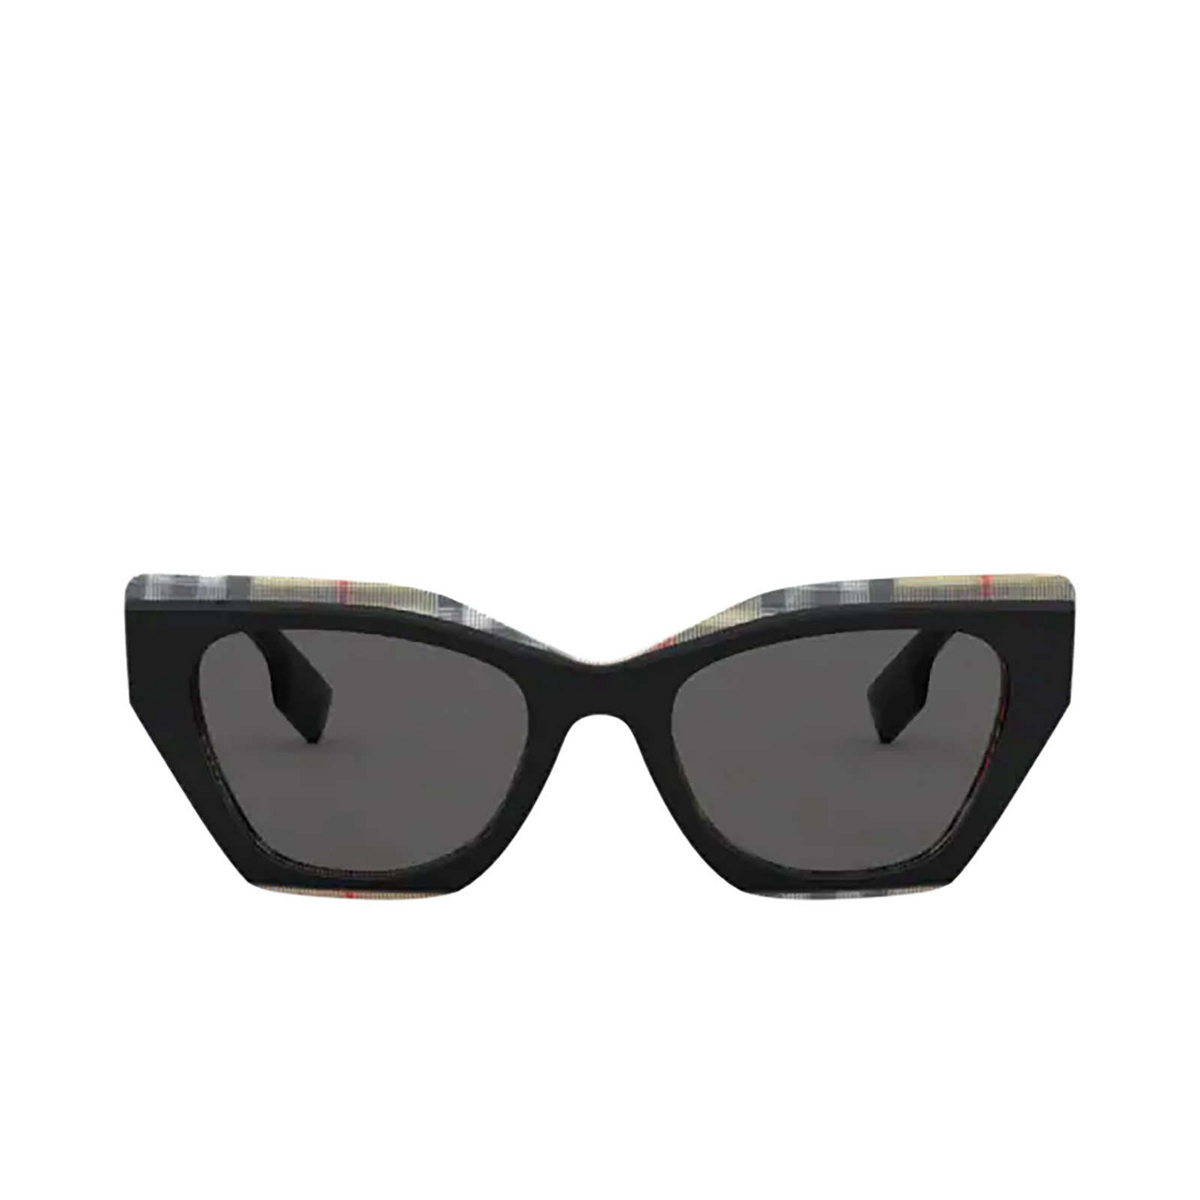 Burberry® Butterfly Sunglasses: Cressy BE4299 color Top Black On Vintage Check 382887 - front view.